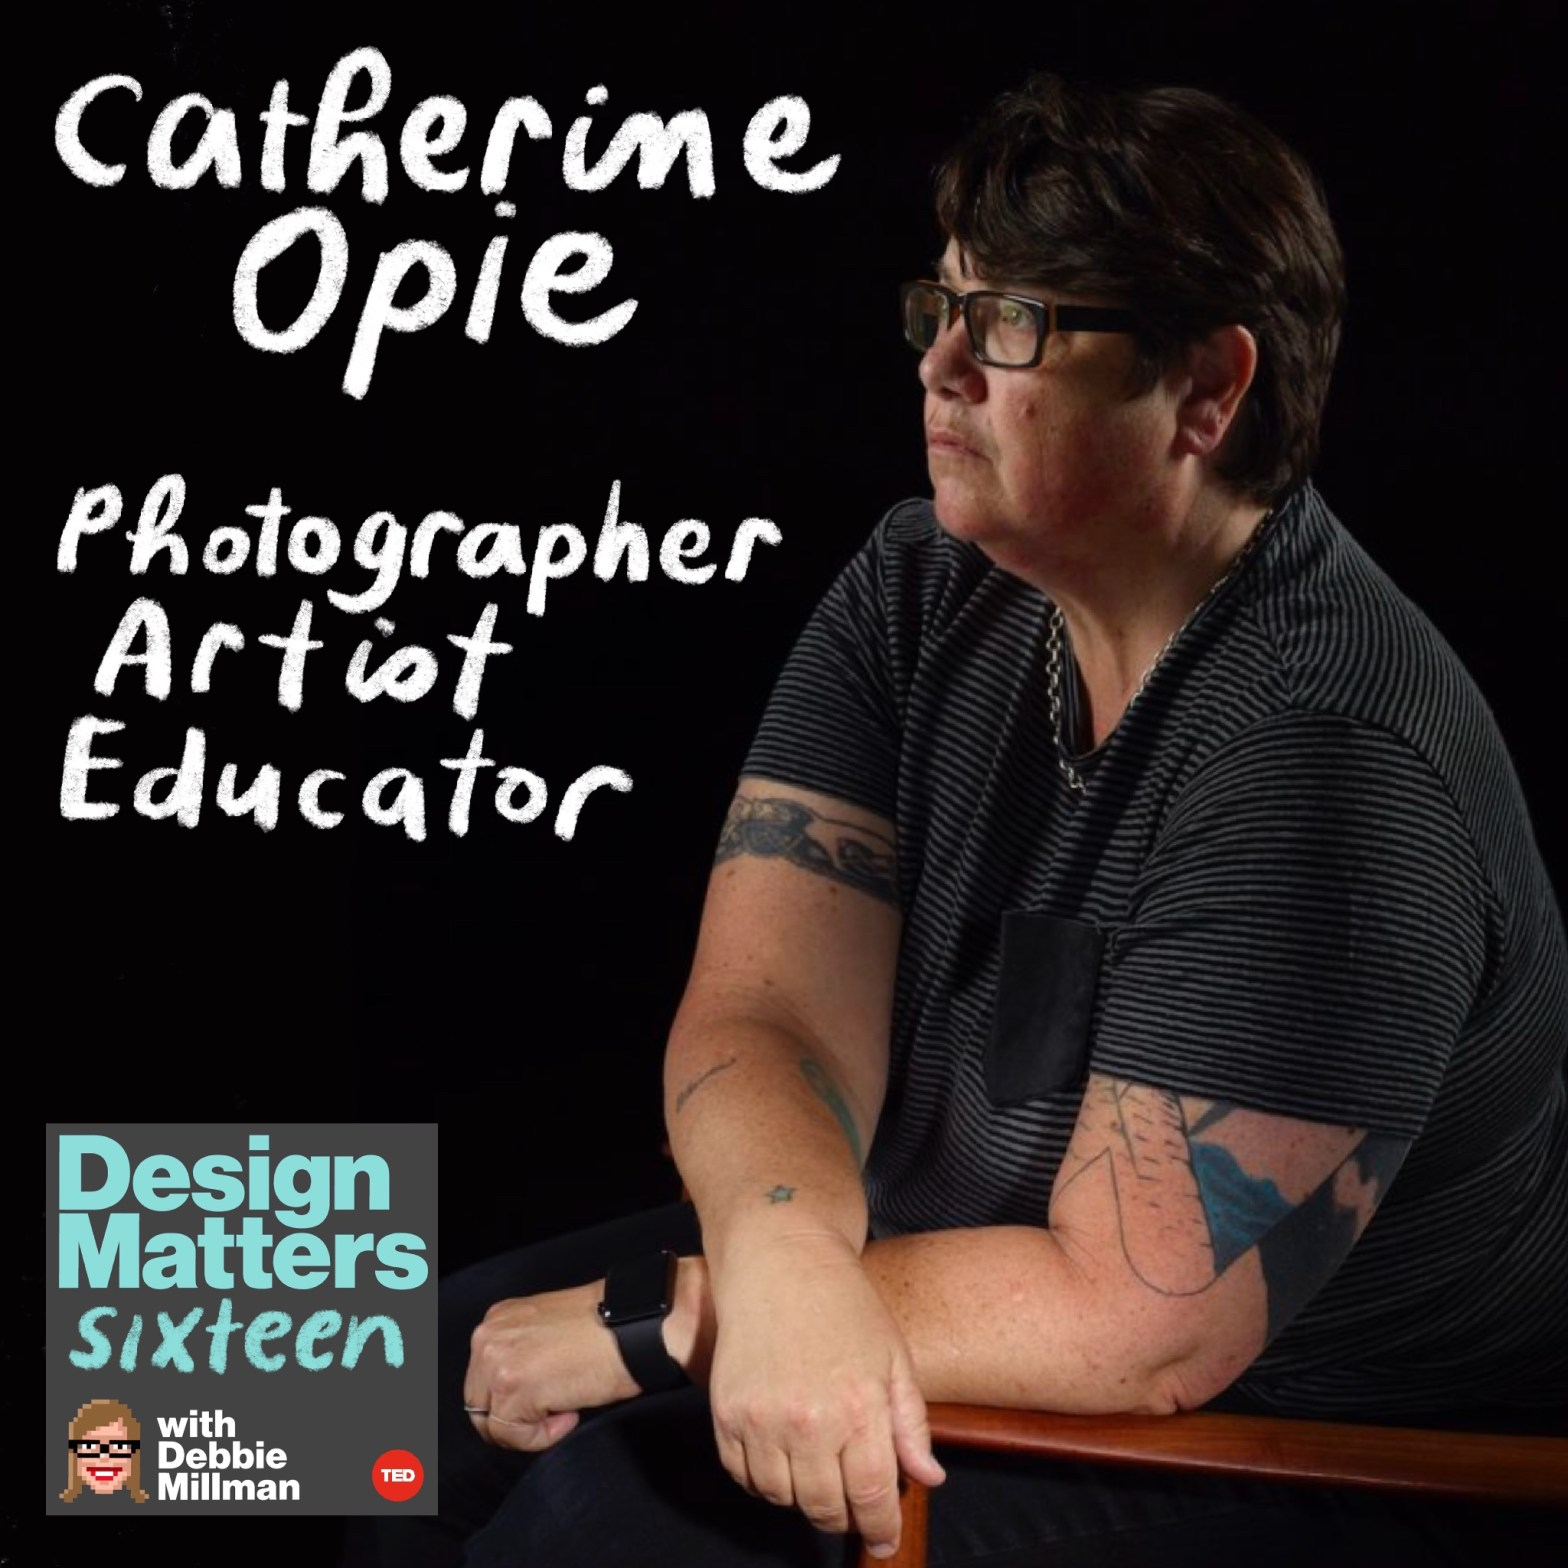 Thumbnail for Design Matters: Catherine Opie